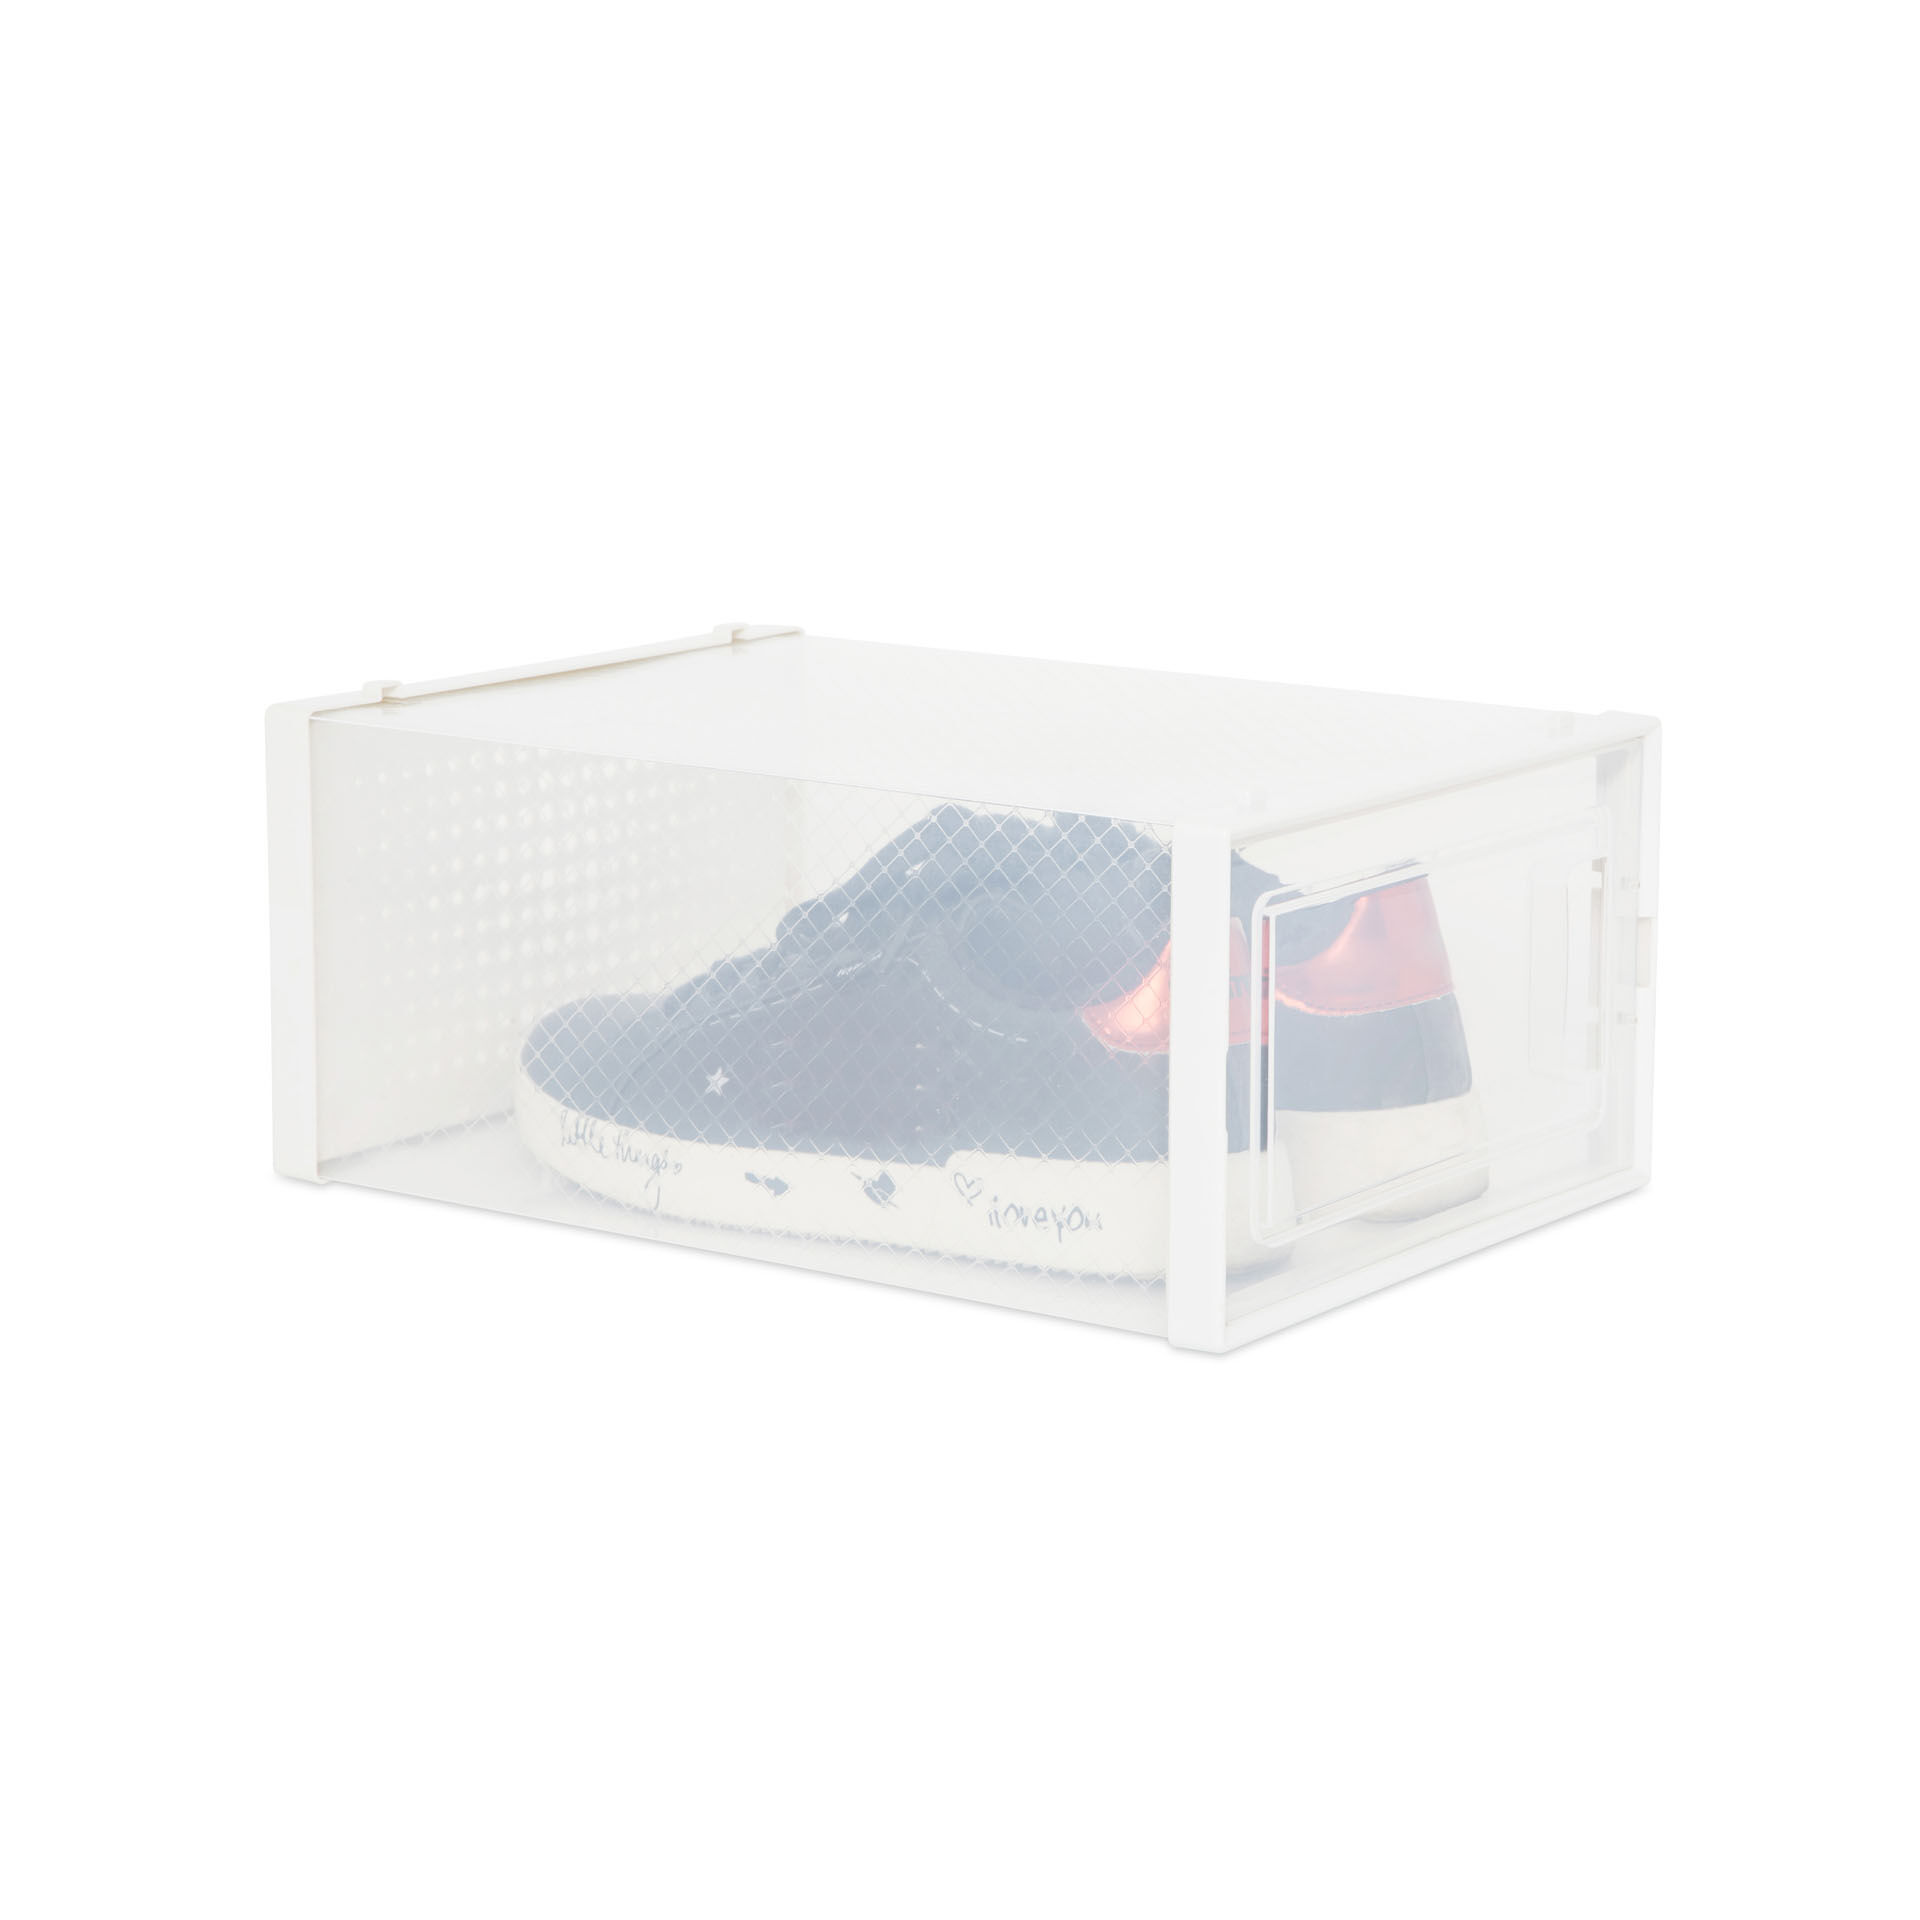 Range-chaussures empilable, , large